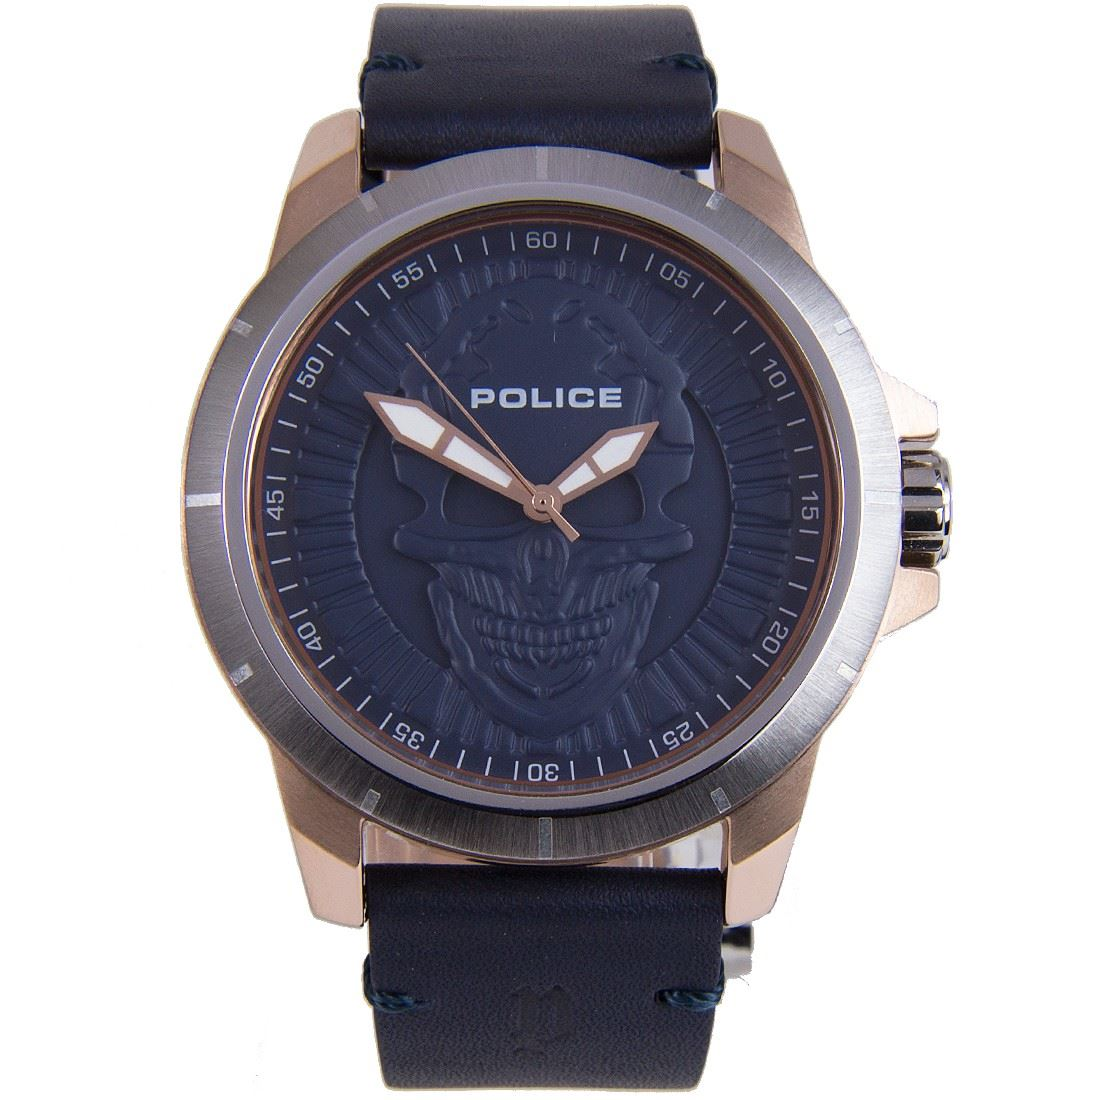 Police Scratch Resistant Leather Strap Gents Reaper Watch ...